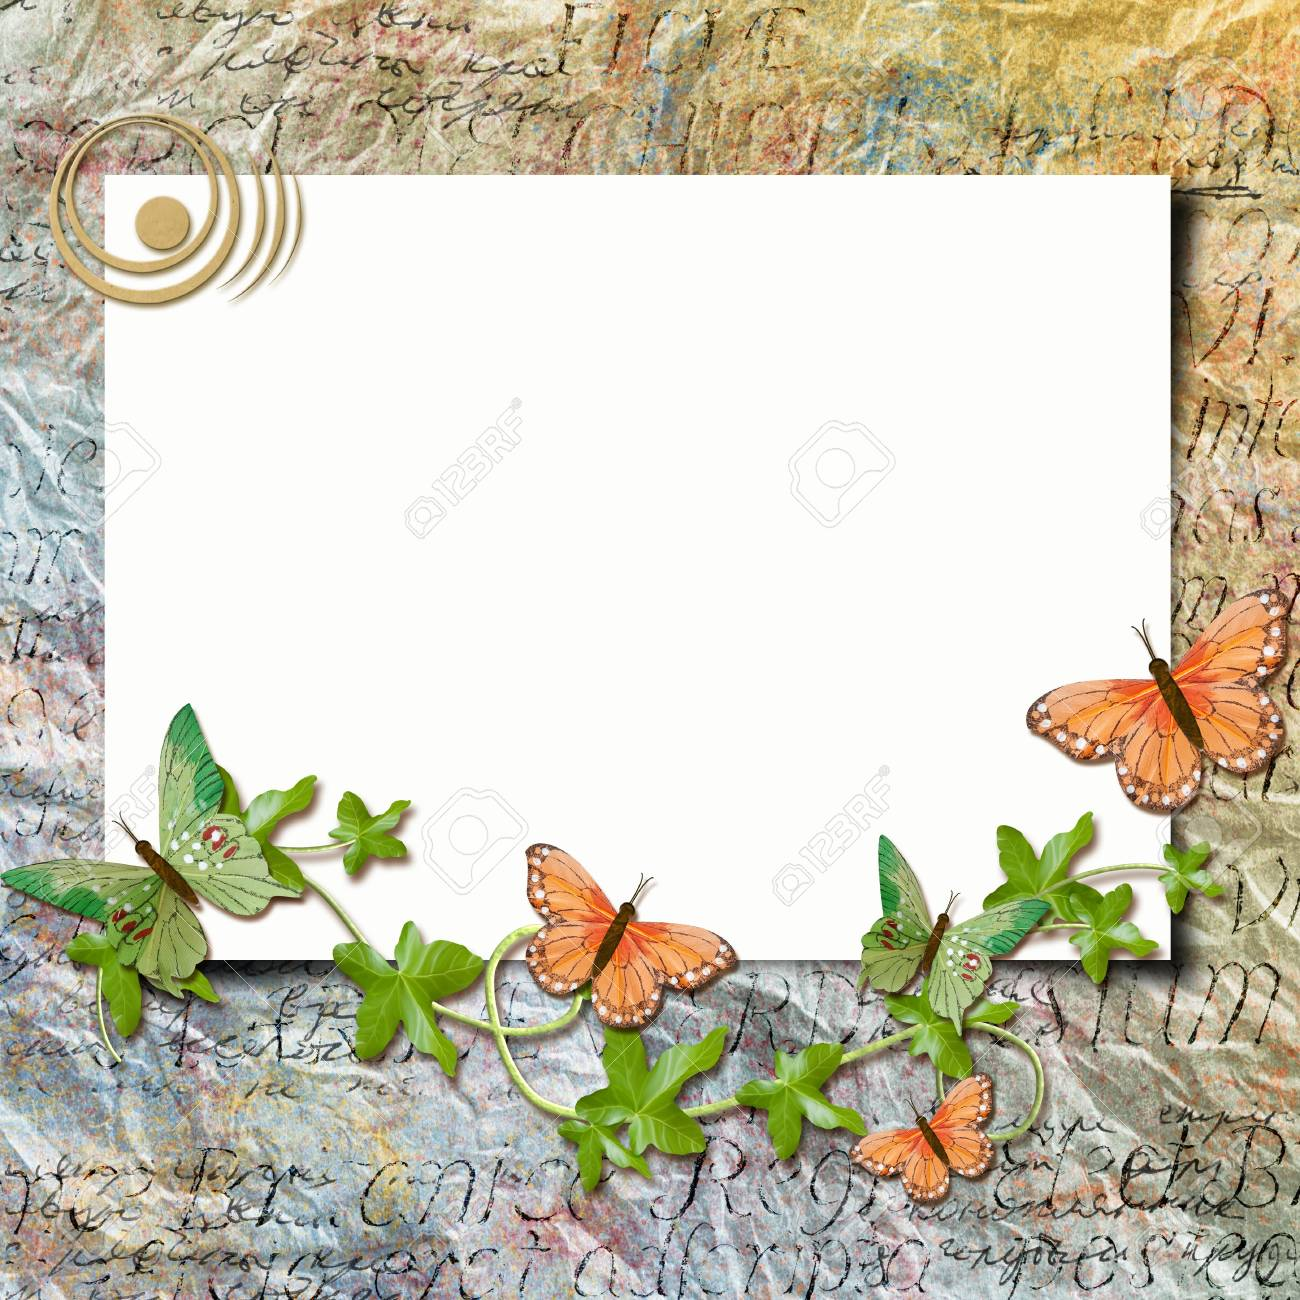 Grunge paper design for information in scrap-booking style Stock Photo - 13110094